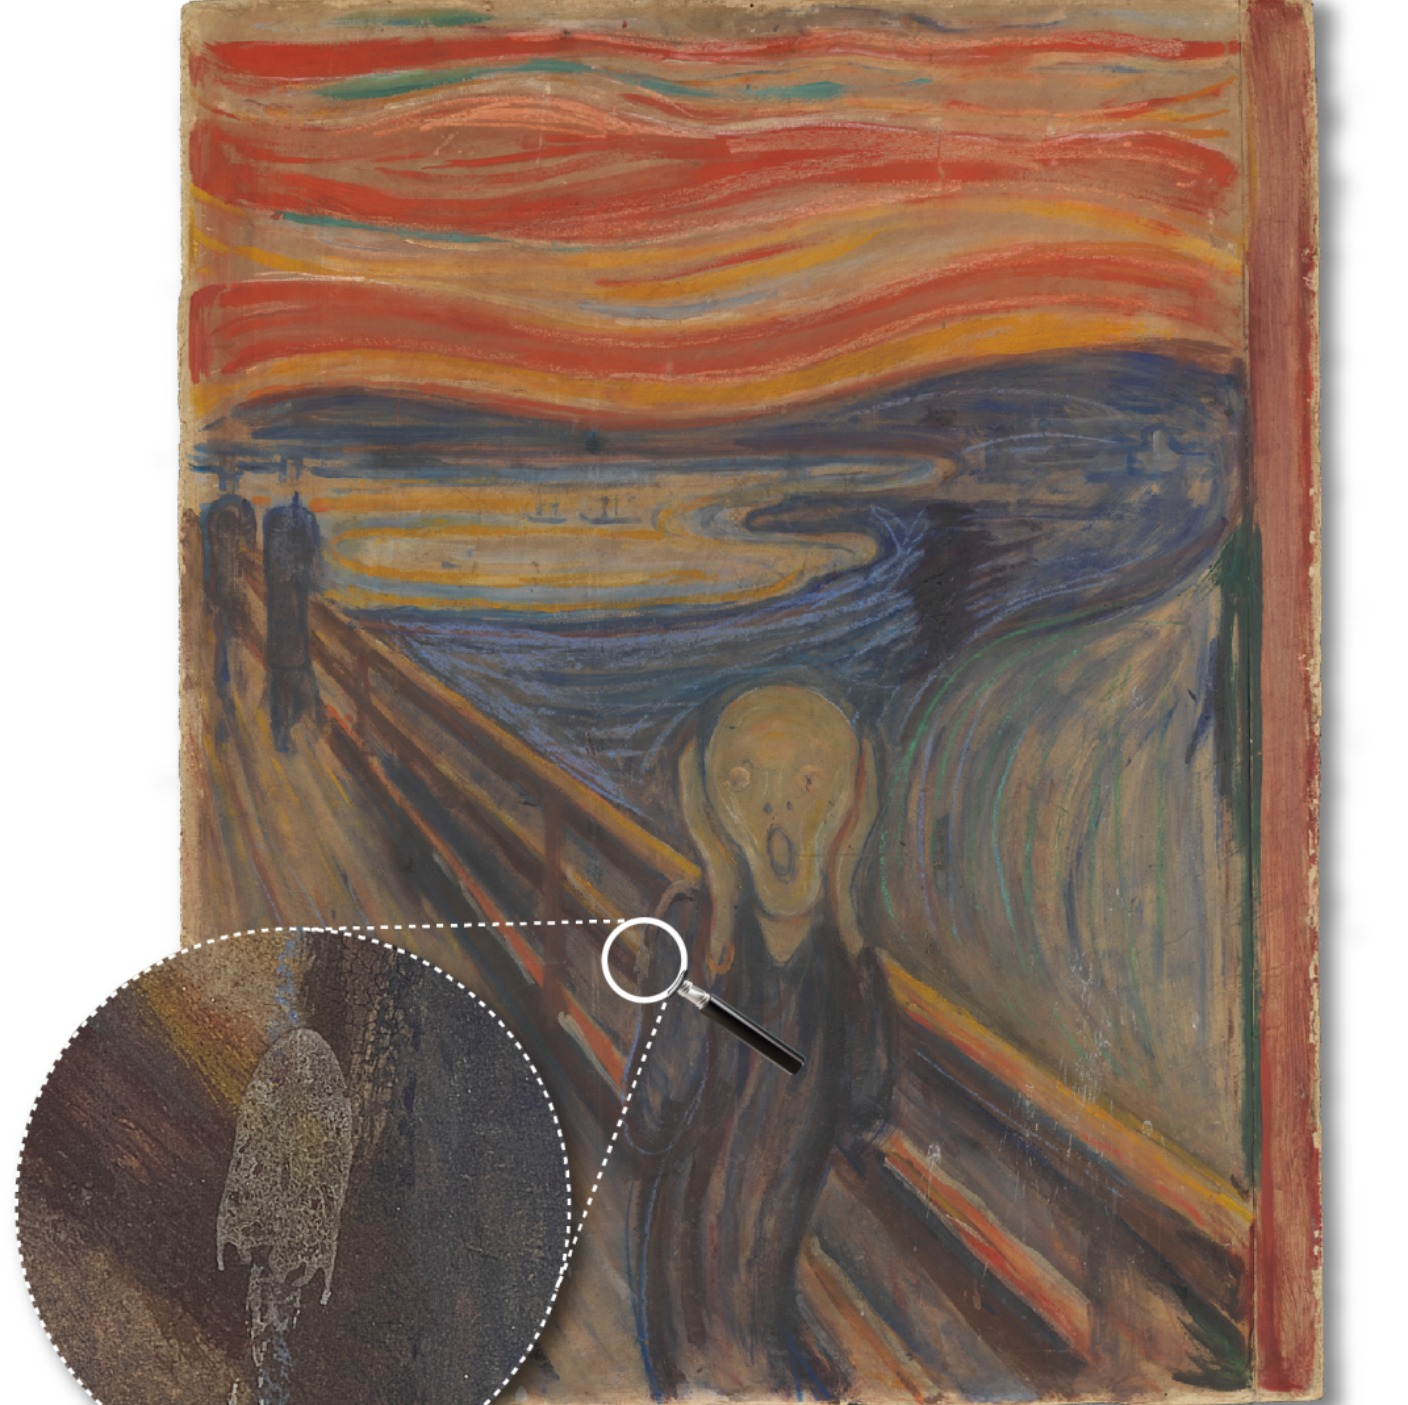 essay on edvard munch the scream A critical analysis of 'the scream' adapted from a university essay i wrote in  2003 includes full references.